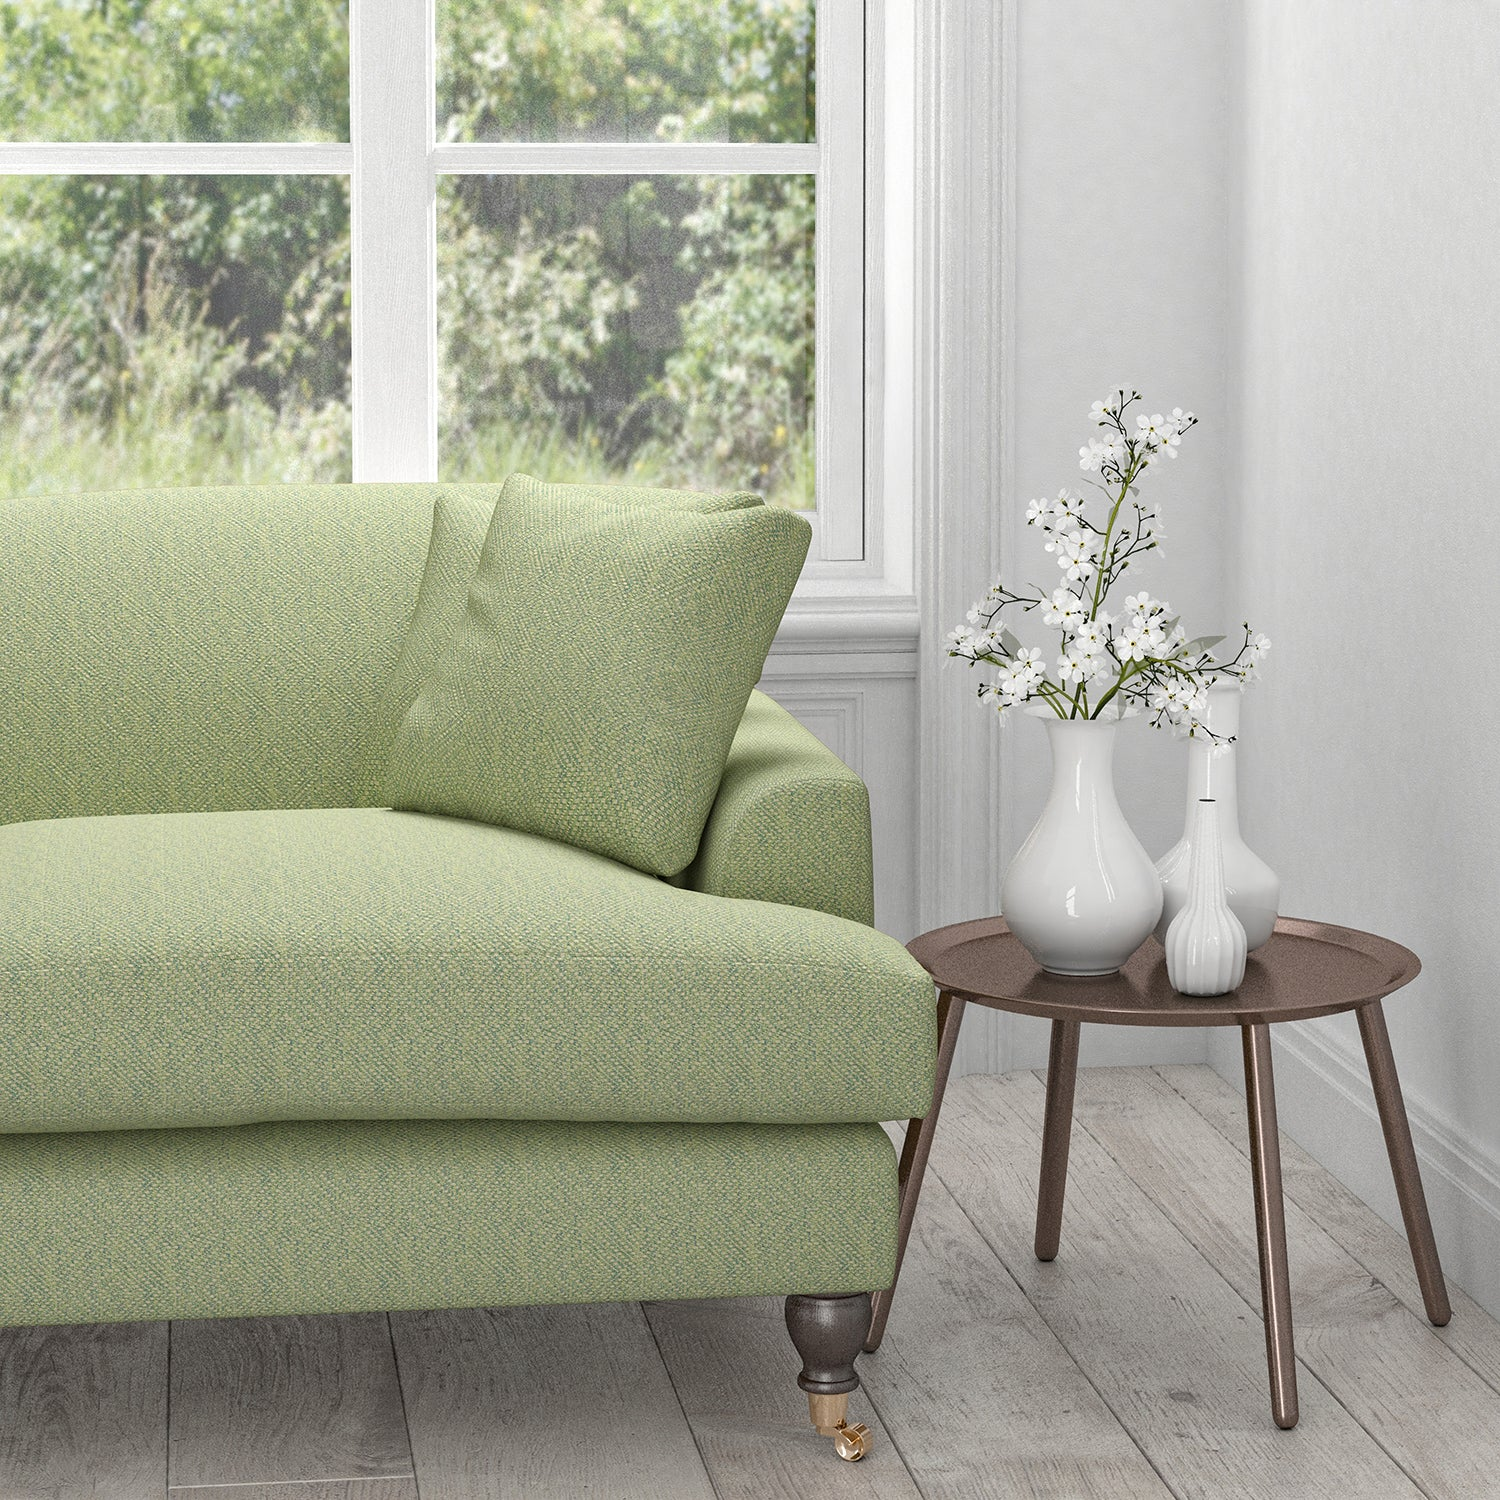 Sofa in a light green upholstery fabric with a neutral woven geometric design